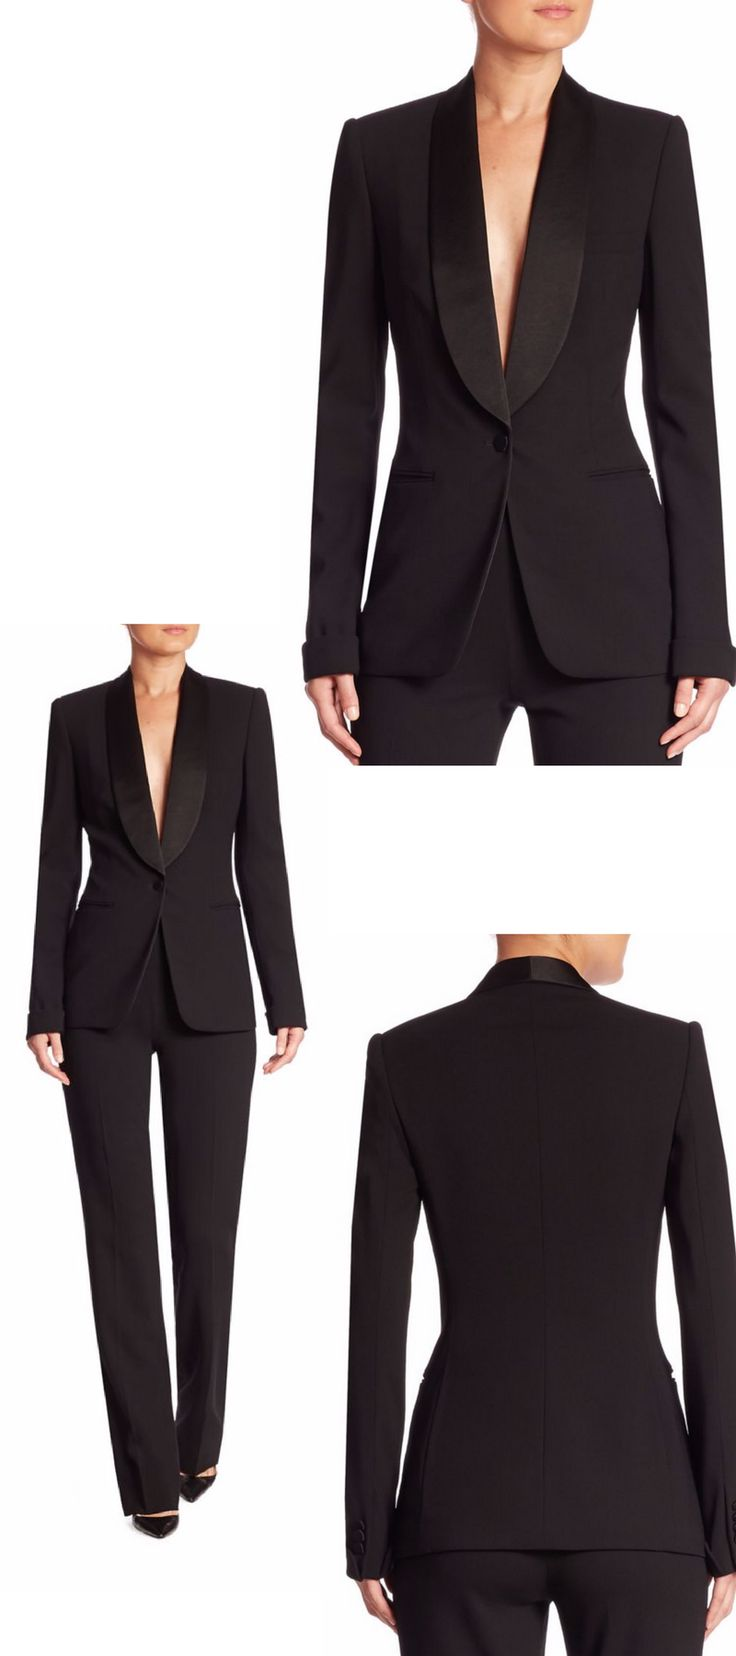 Ralph Lauren Collection Sawyer Wool & Silk Jacket Color:Black Size: Size Guide  Fit Predictor Calculate your size 246810121416 USD$1,990.00 Earn 3980 points when purchasing with the SaksFirst Credit Card  -Quantity 1 + SHIP ITPICK UP IN STORE ADD TO BAG FREE 2-Day Shipping & Free Returns Learn More | Sign In Details Silk lapels elevate classic wool jacket Silk lapels Shoulder pads Long sleeves with fold-over button cuffs Single front button closure Side welt pockets Silk lining